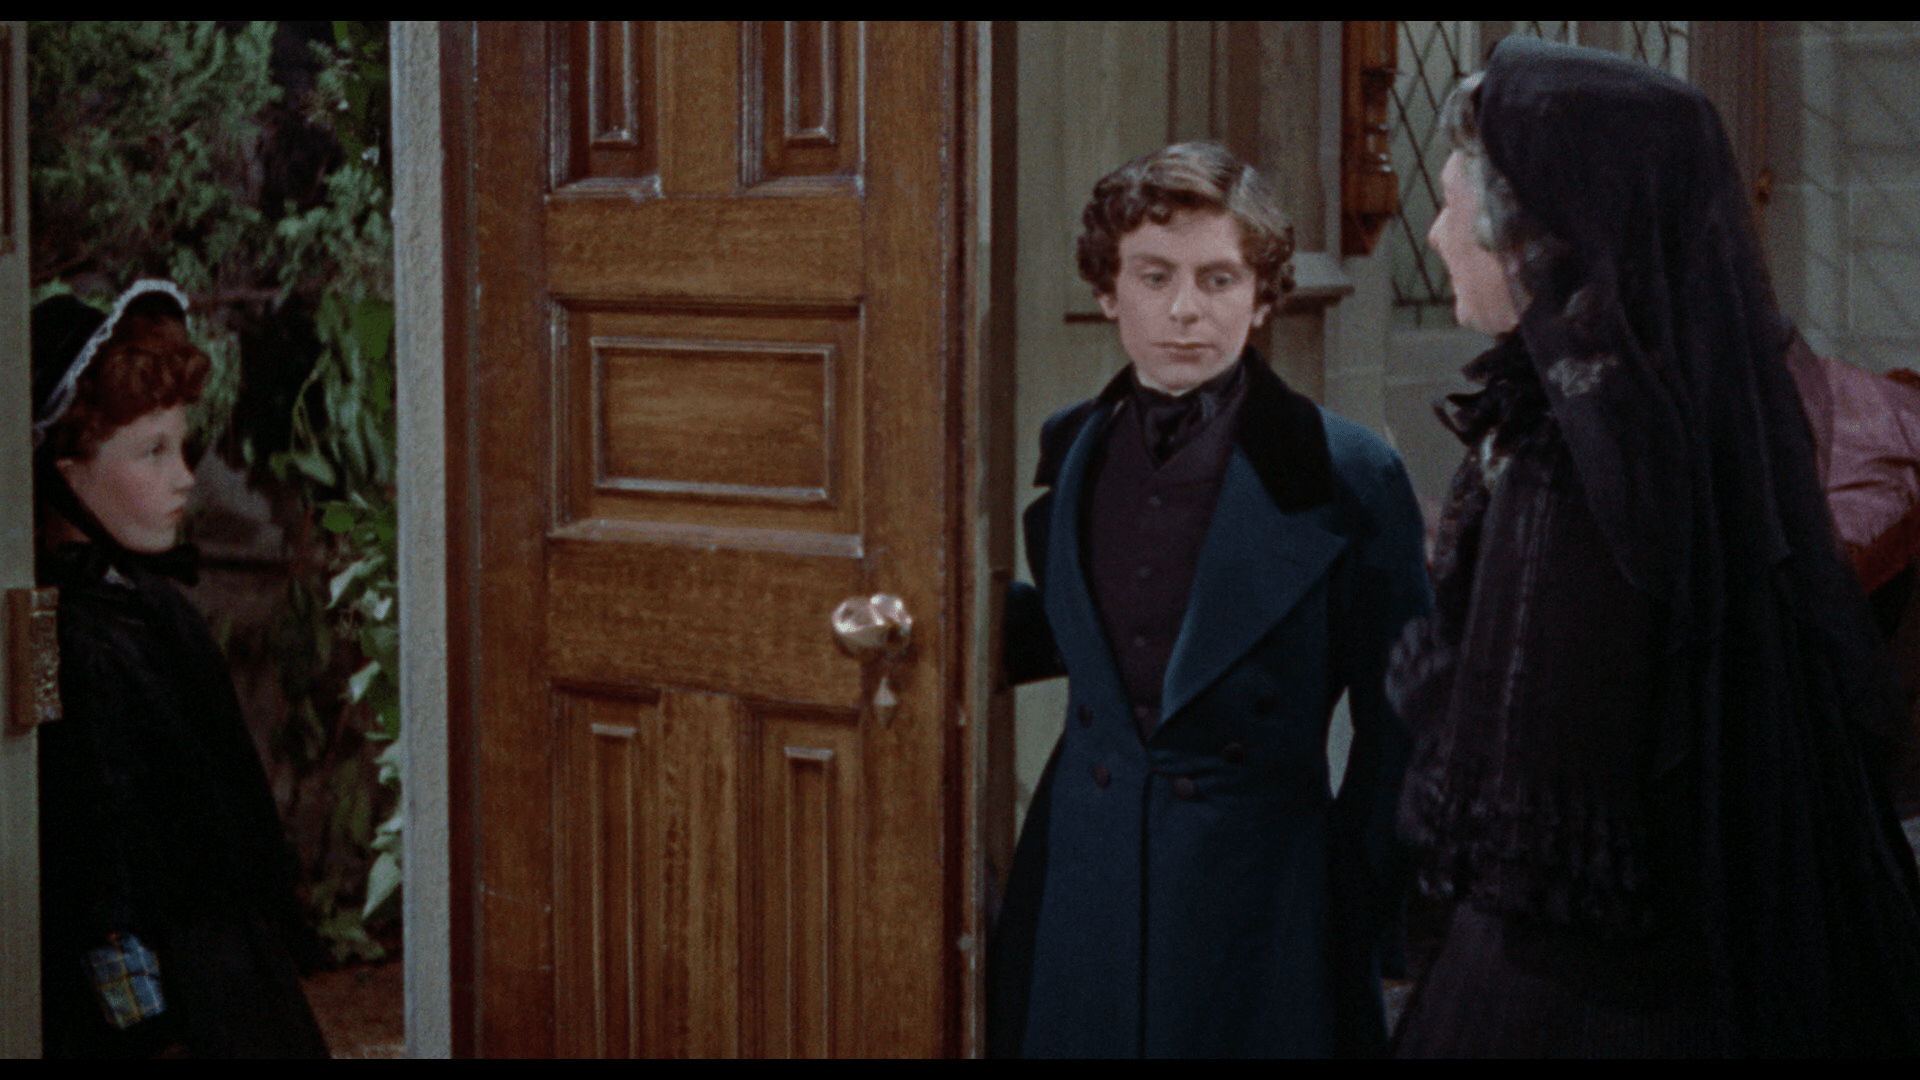 The Curse of Frankenstein (1957) [Warner Archive Blu-ray review] 6